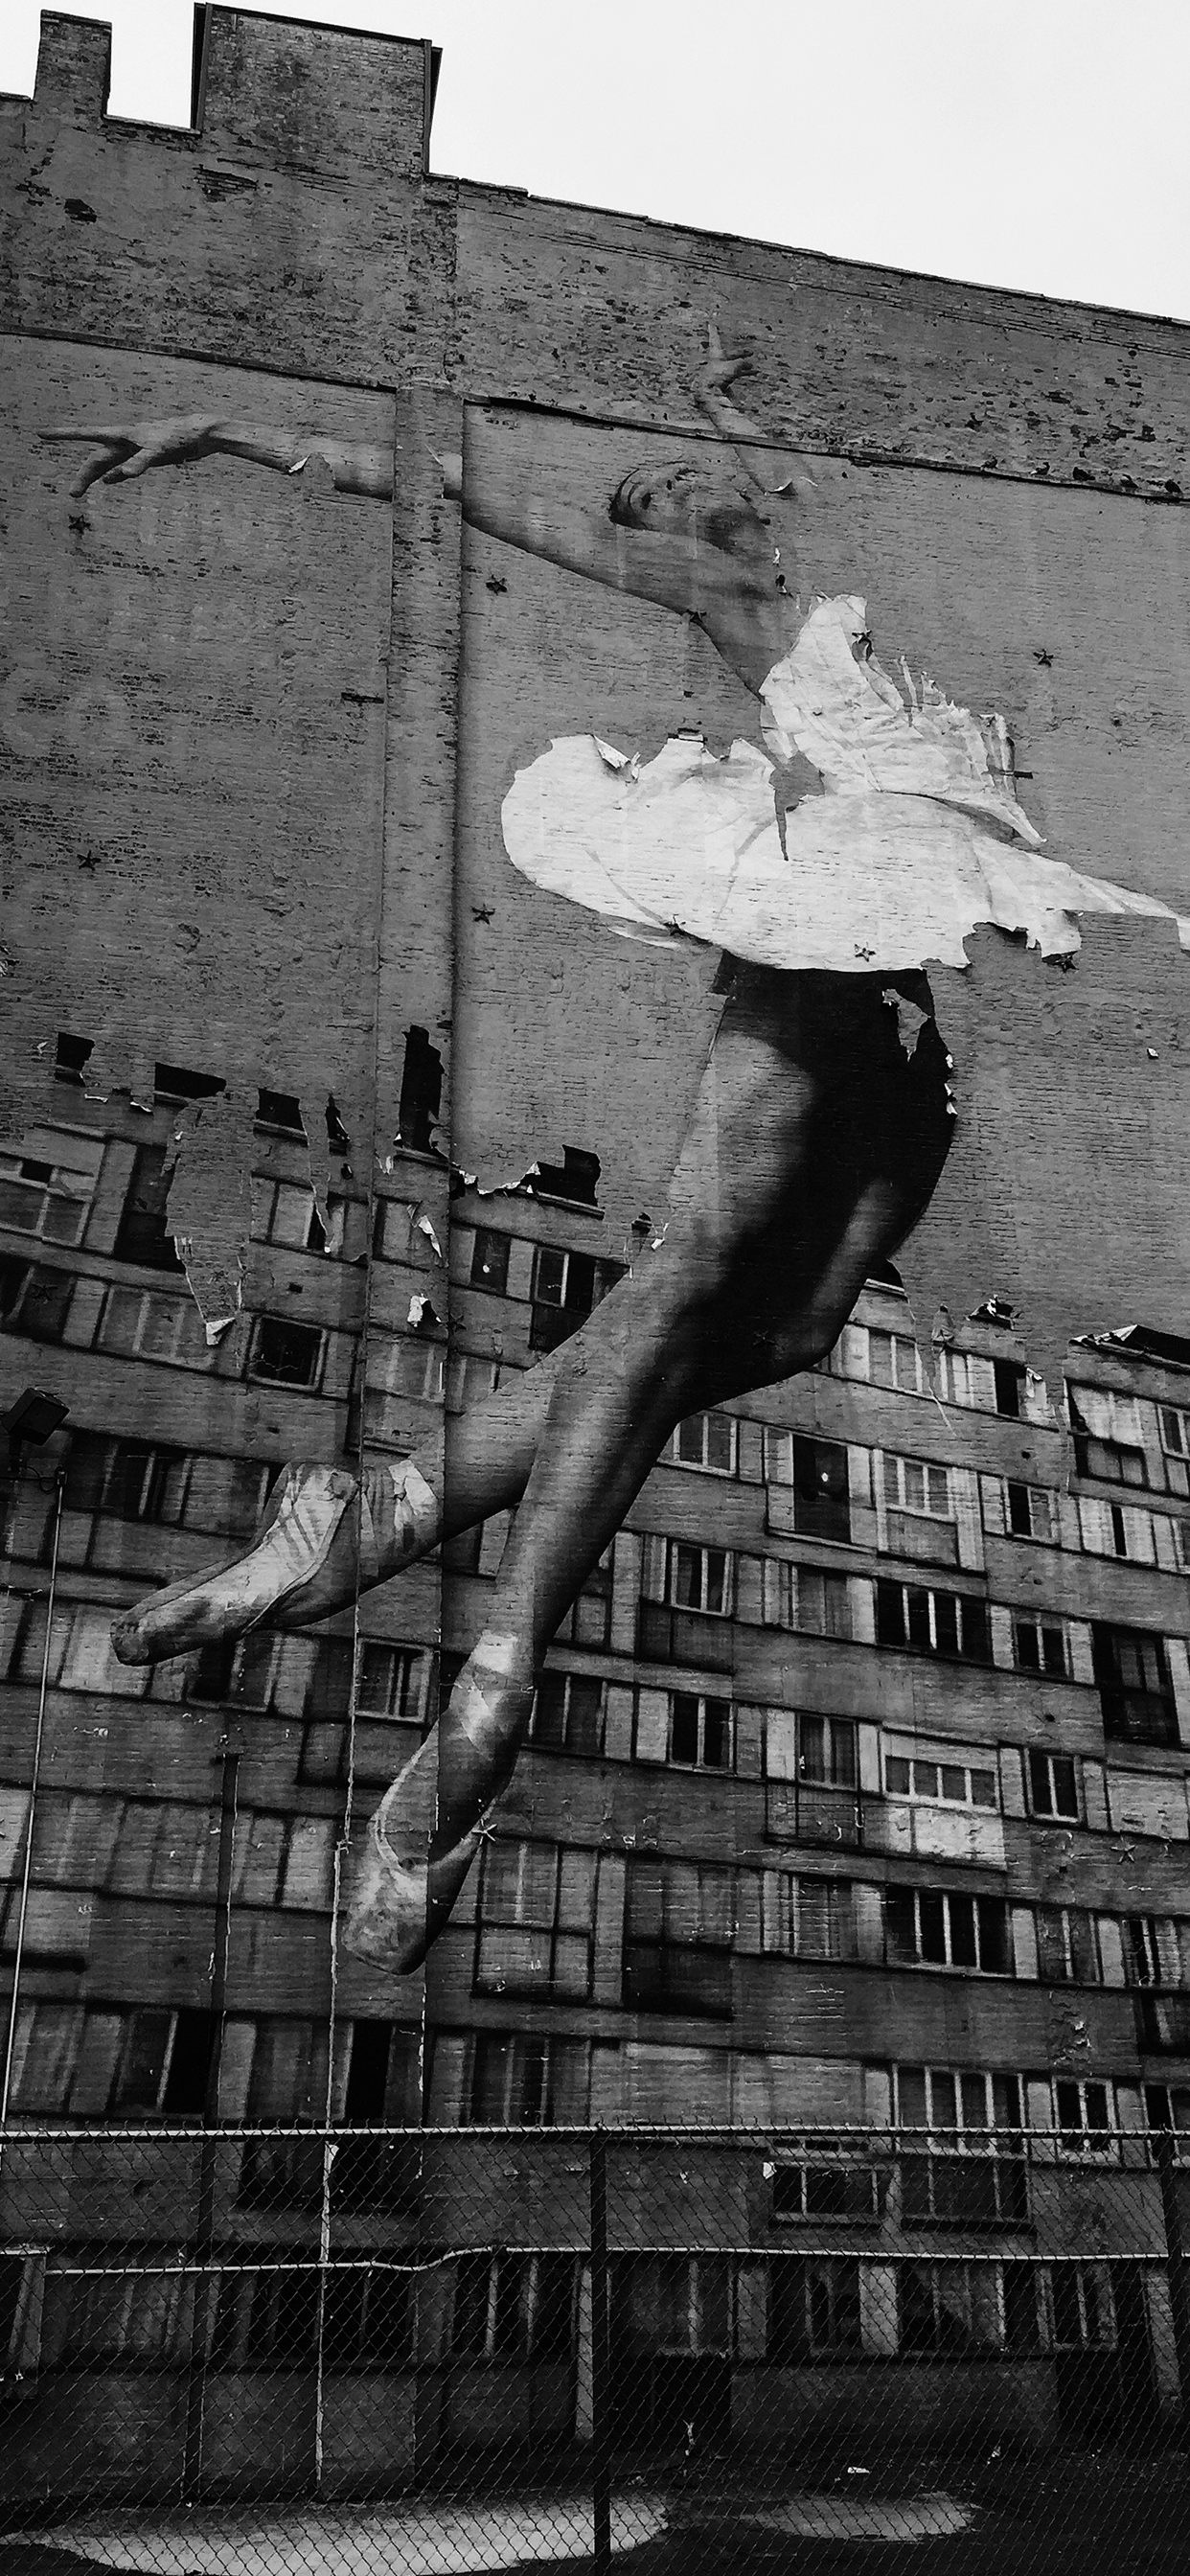 iPhone wallpaper graffiti ballet dancer Graffiti